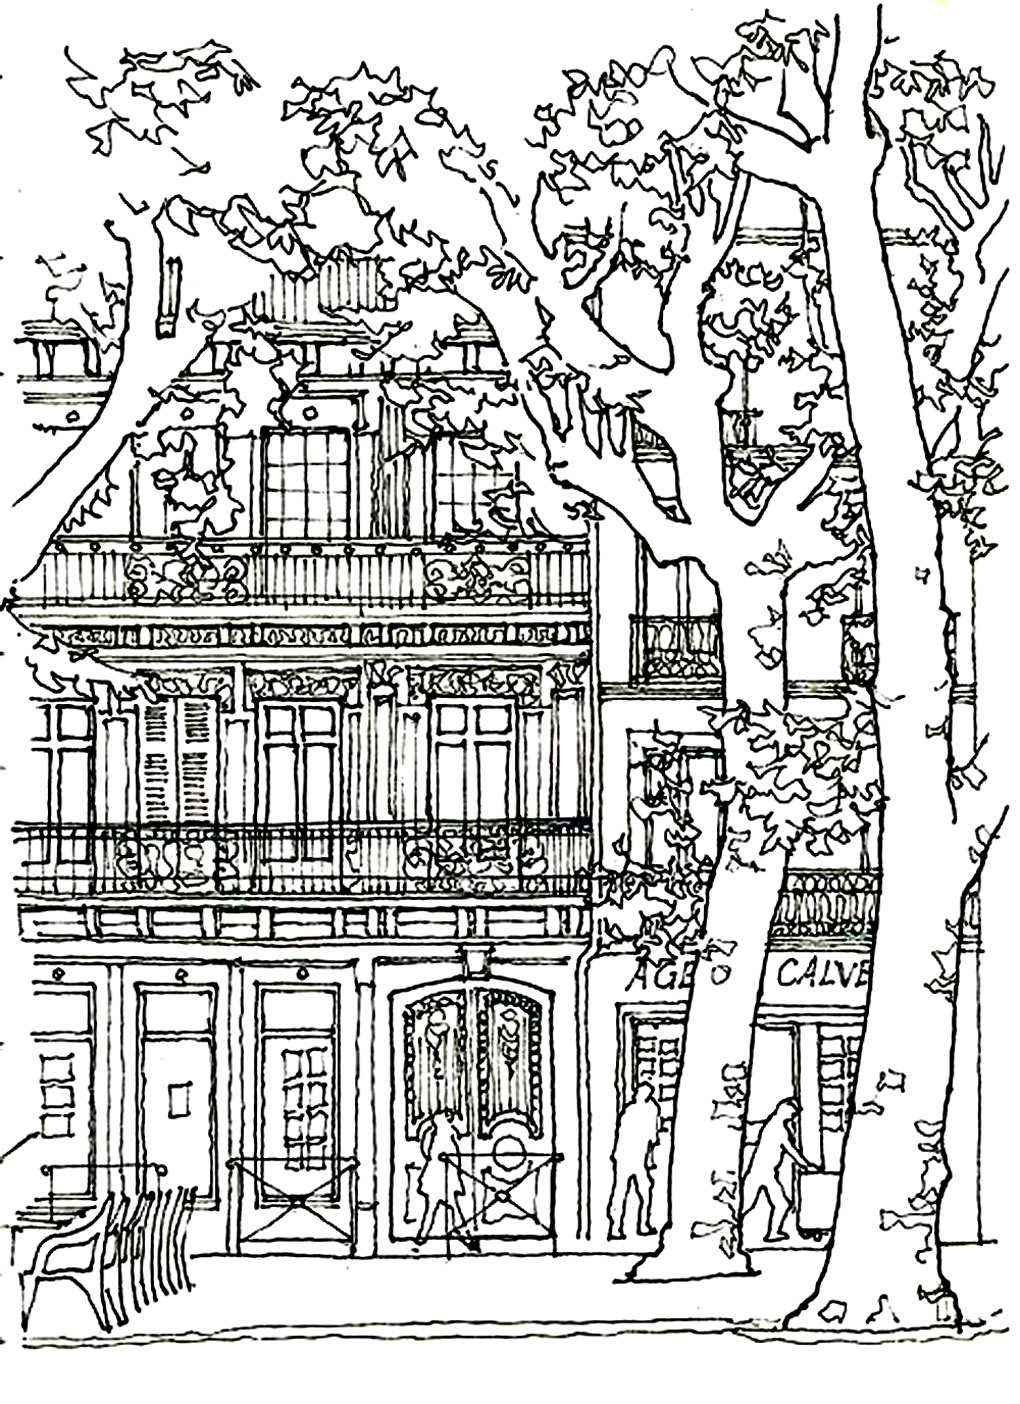 Free coloring pages houses and homes - Architecture House Tree Architecture And Living Coloring Pages For Adults Justcolor